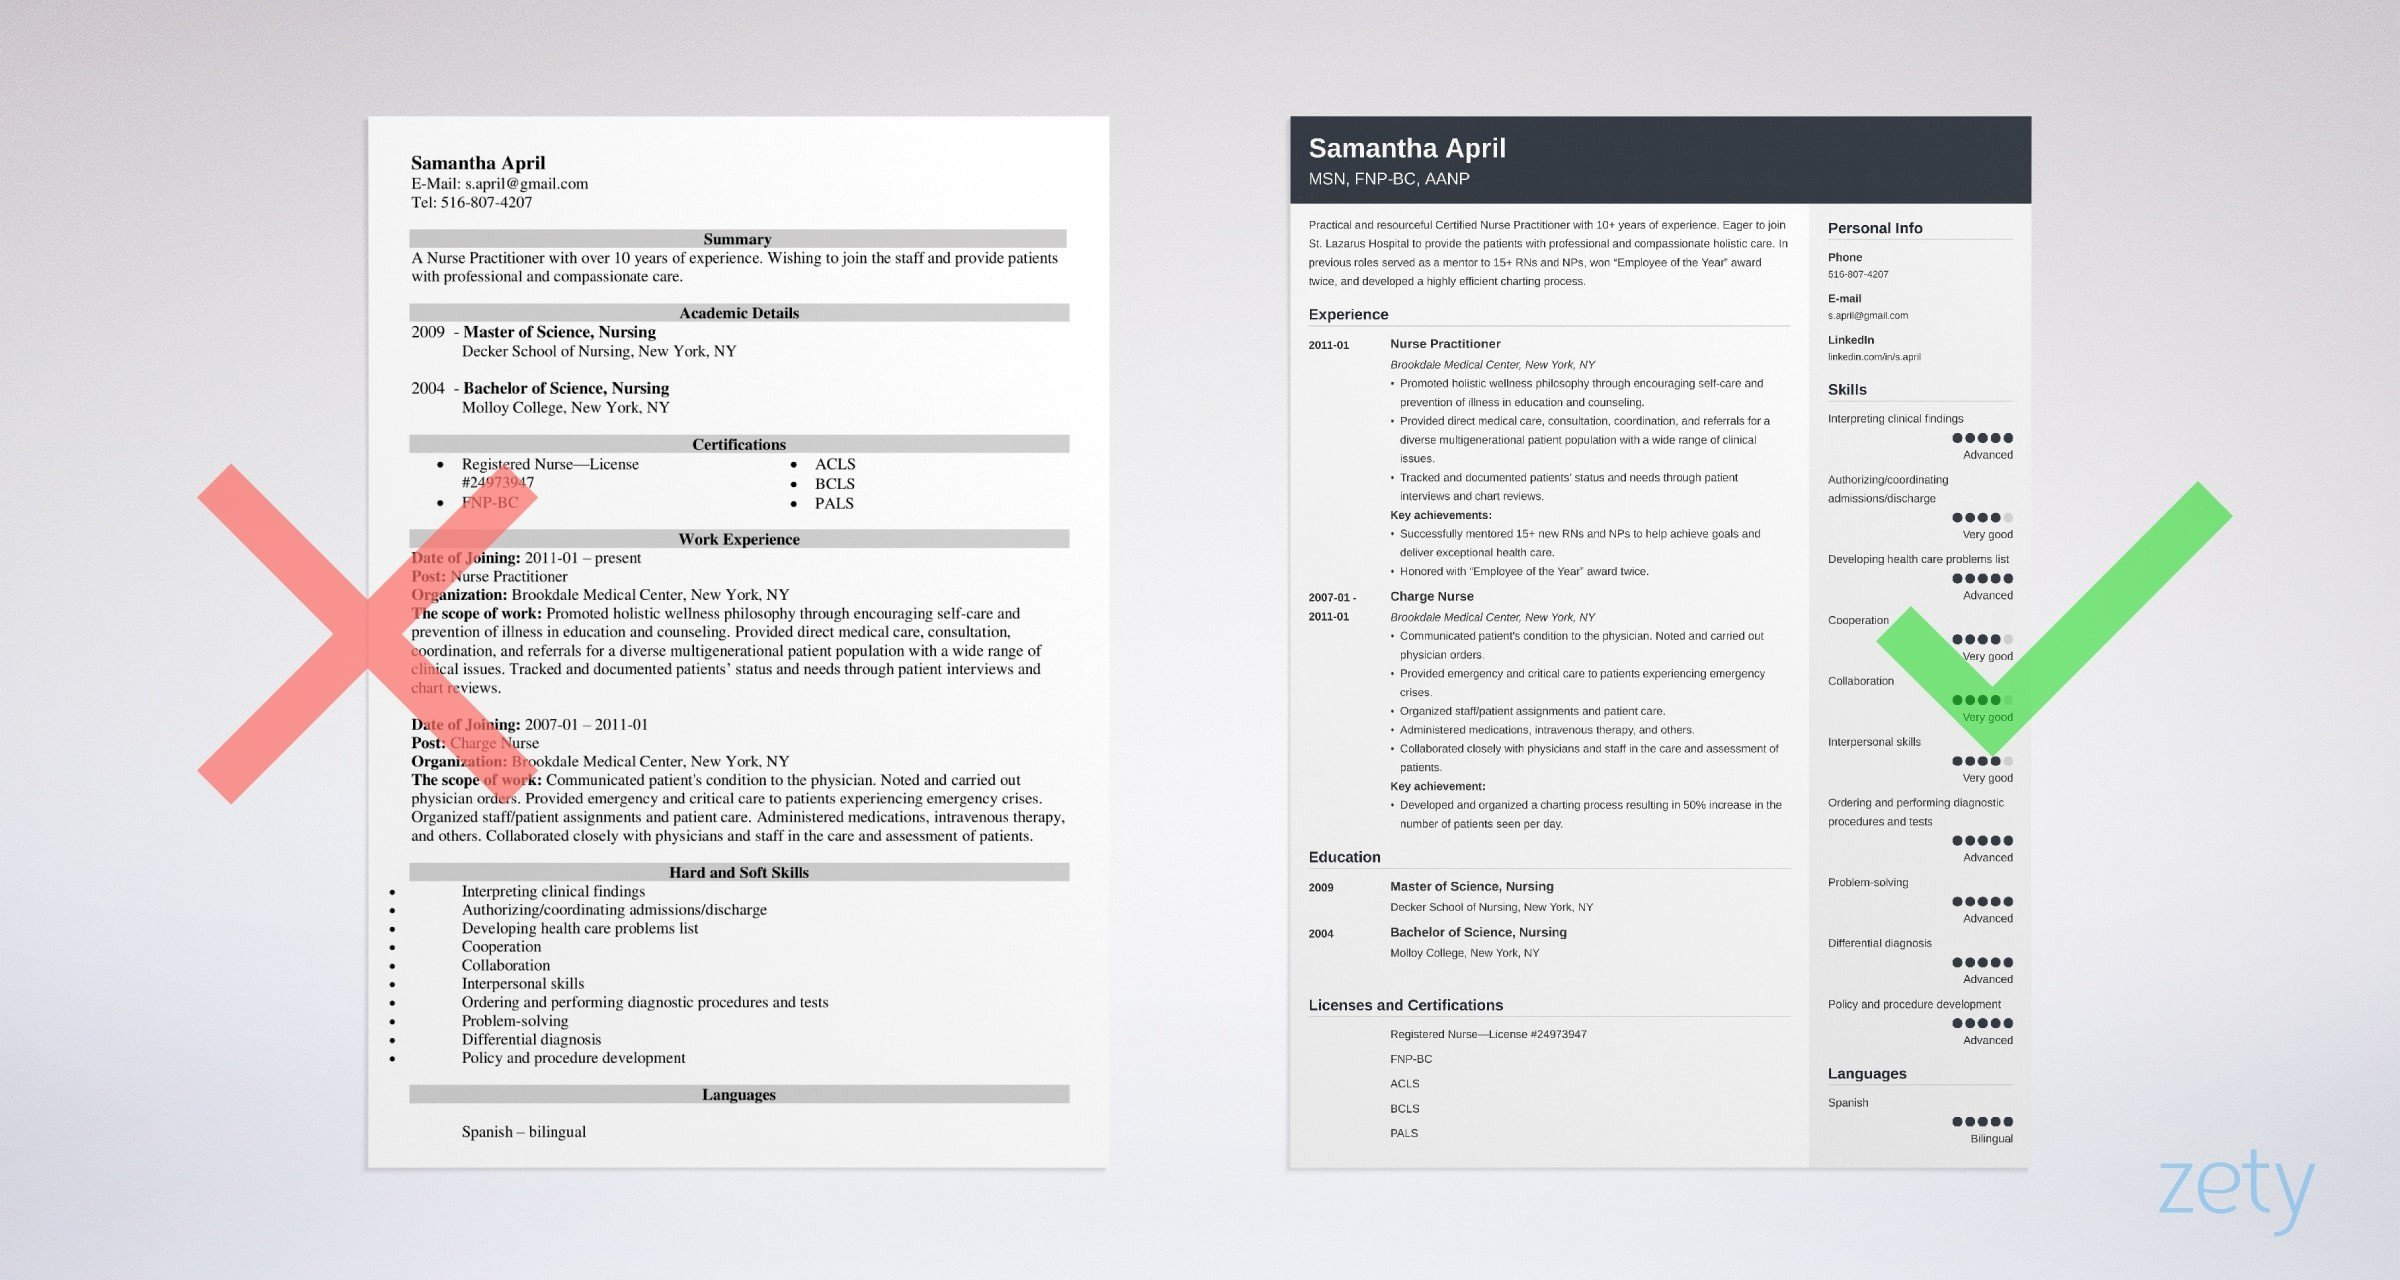 nurse practitioner resume examples template guide for np fnp sample new example define Resume Sample Resume For New Nurse Practitioner